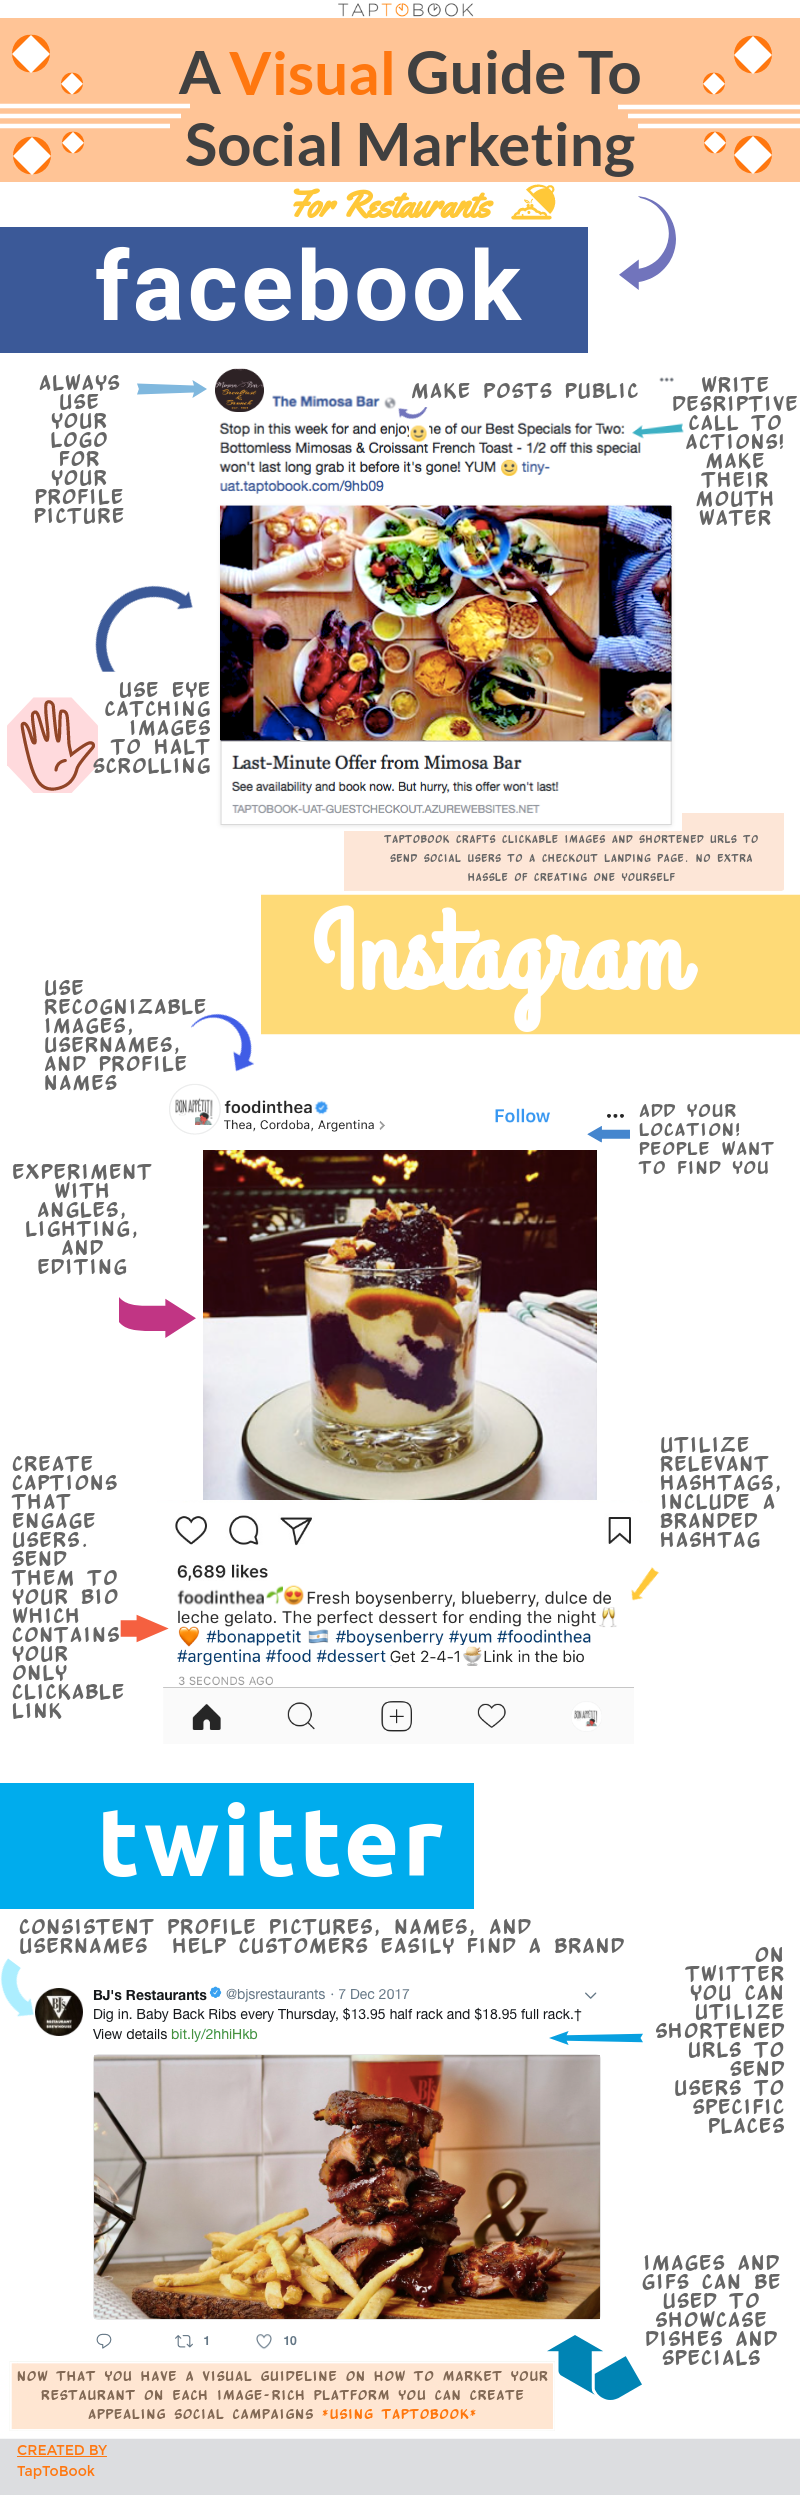 HOW TO MARKET RESTAURANT ON SOCIAL MEDIA | TapToBook